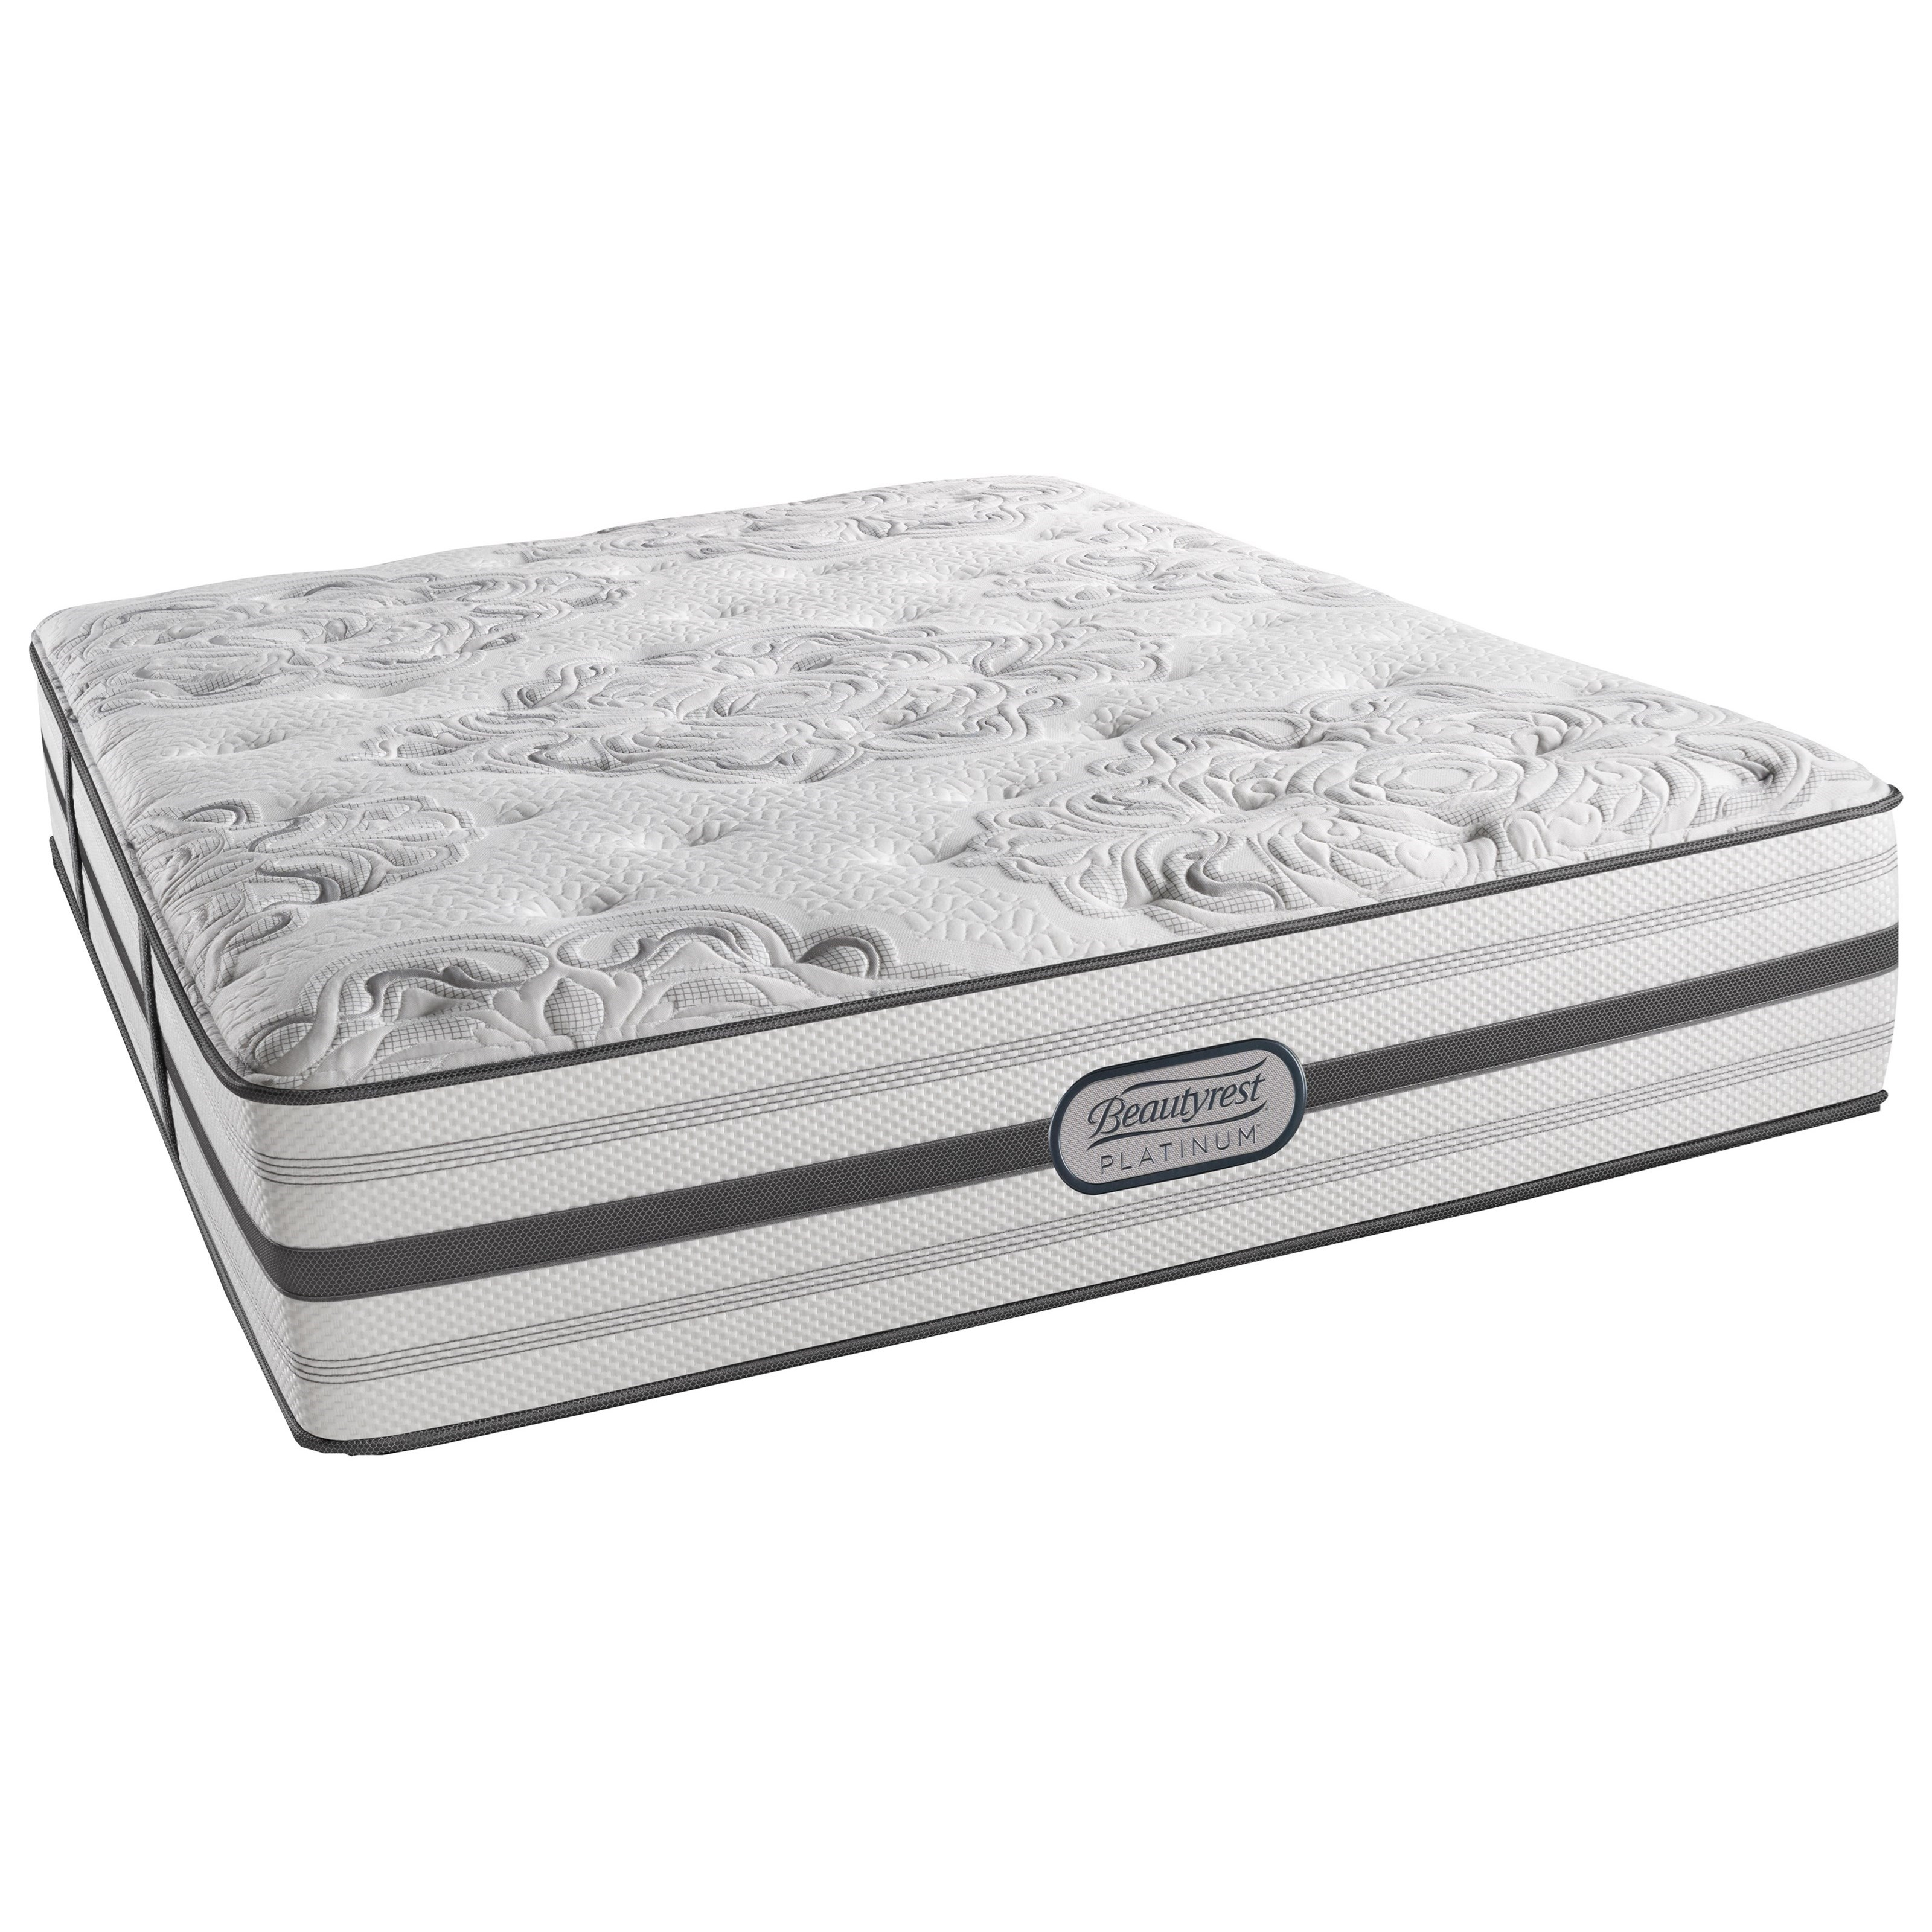 Beautyrest Platinum Brittany King Luxury Firm Adjustable Set - Item Number: LV2LFM-K+2xSM1-TXLK